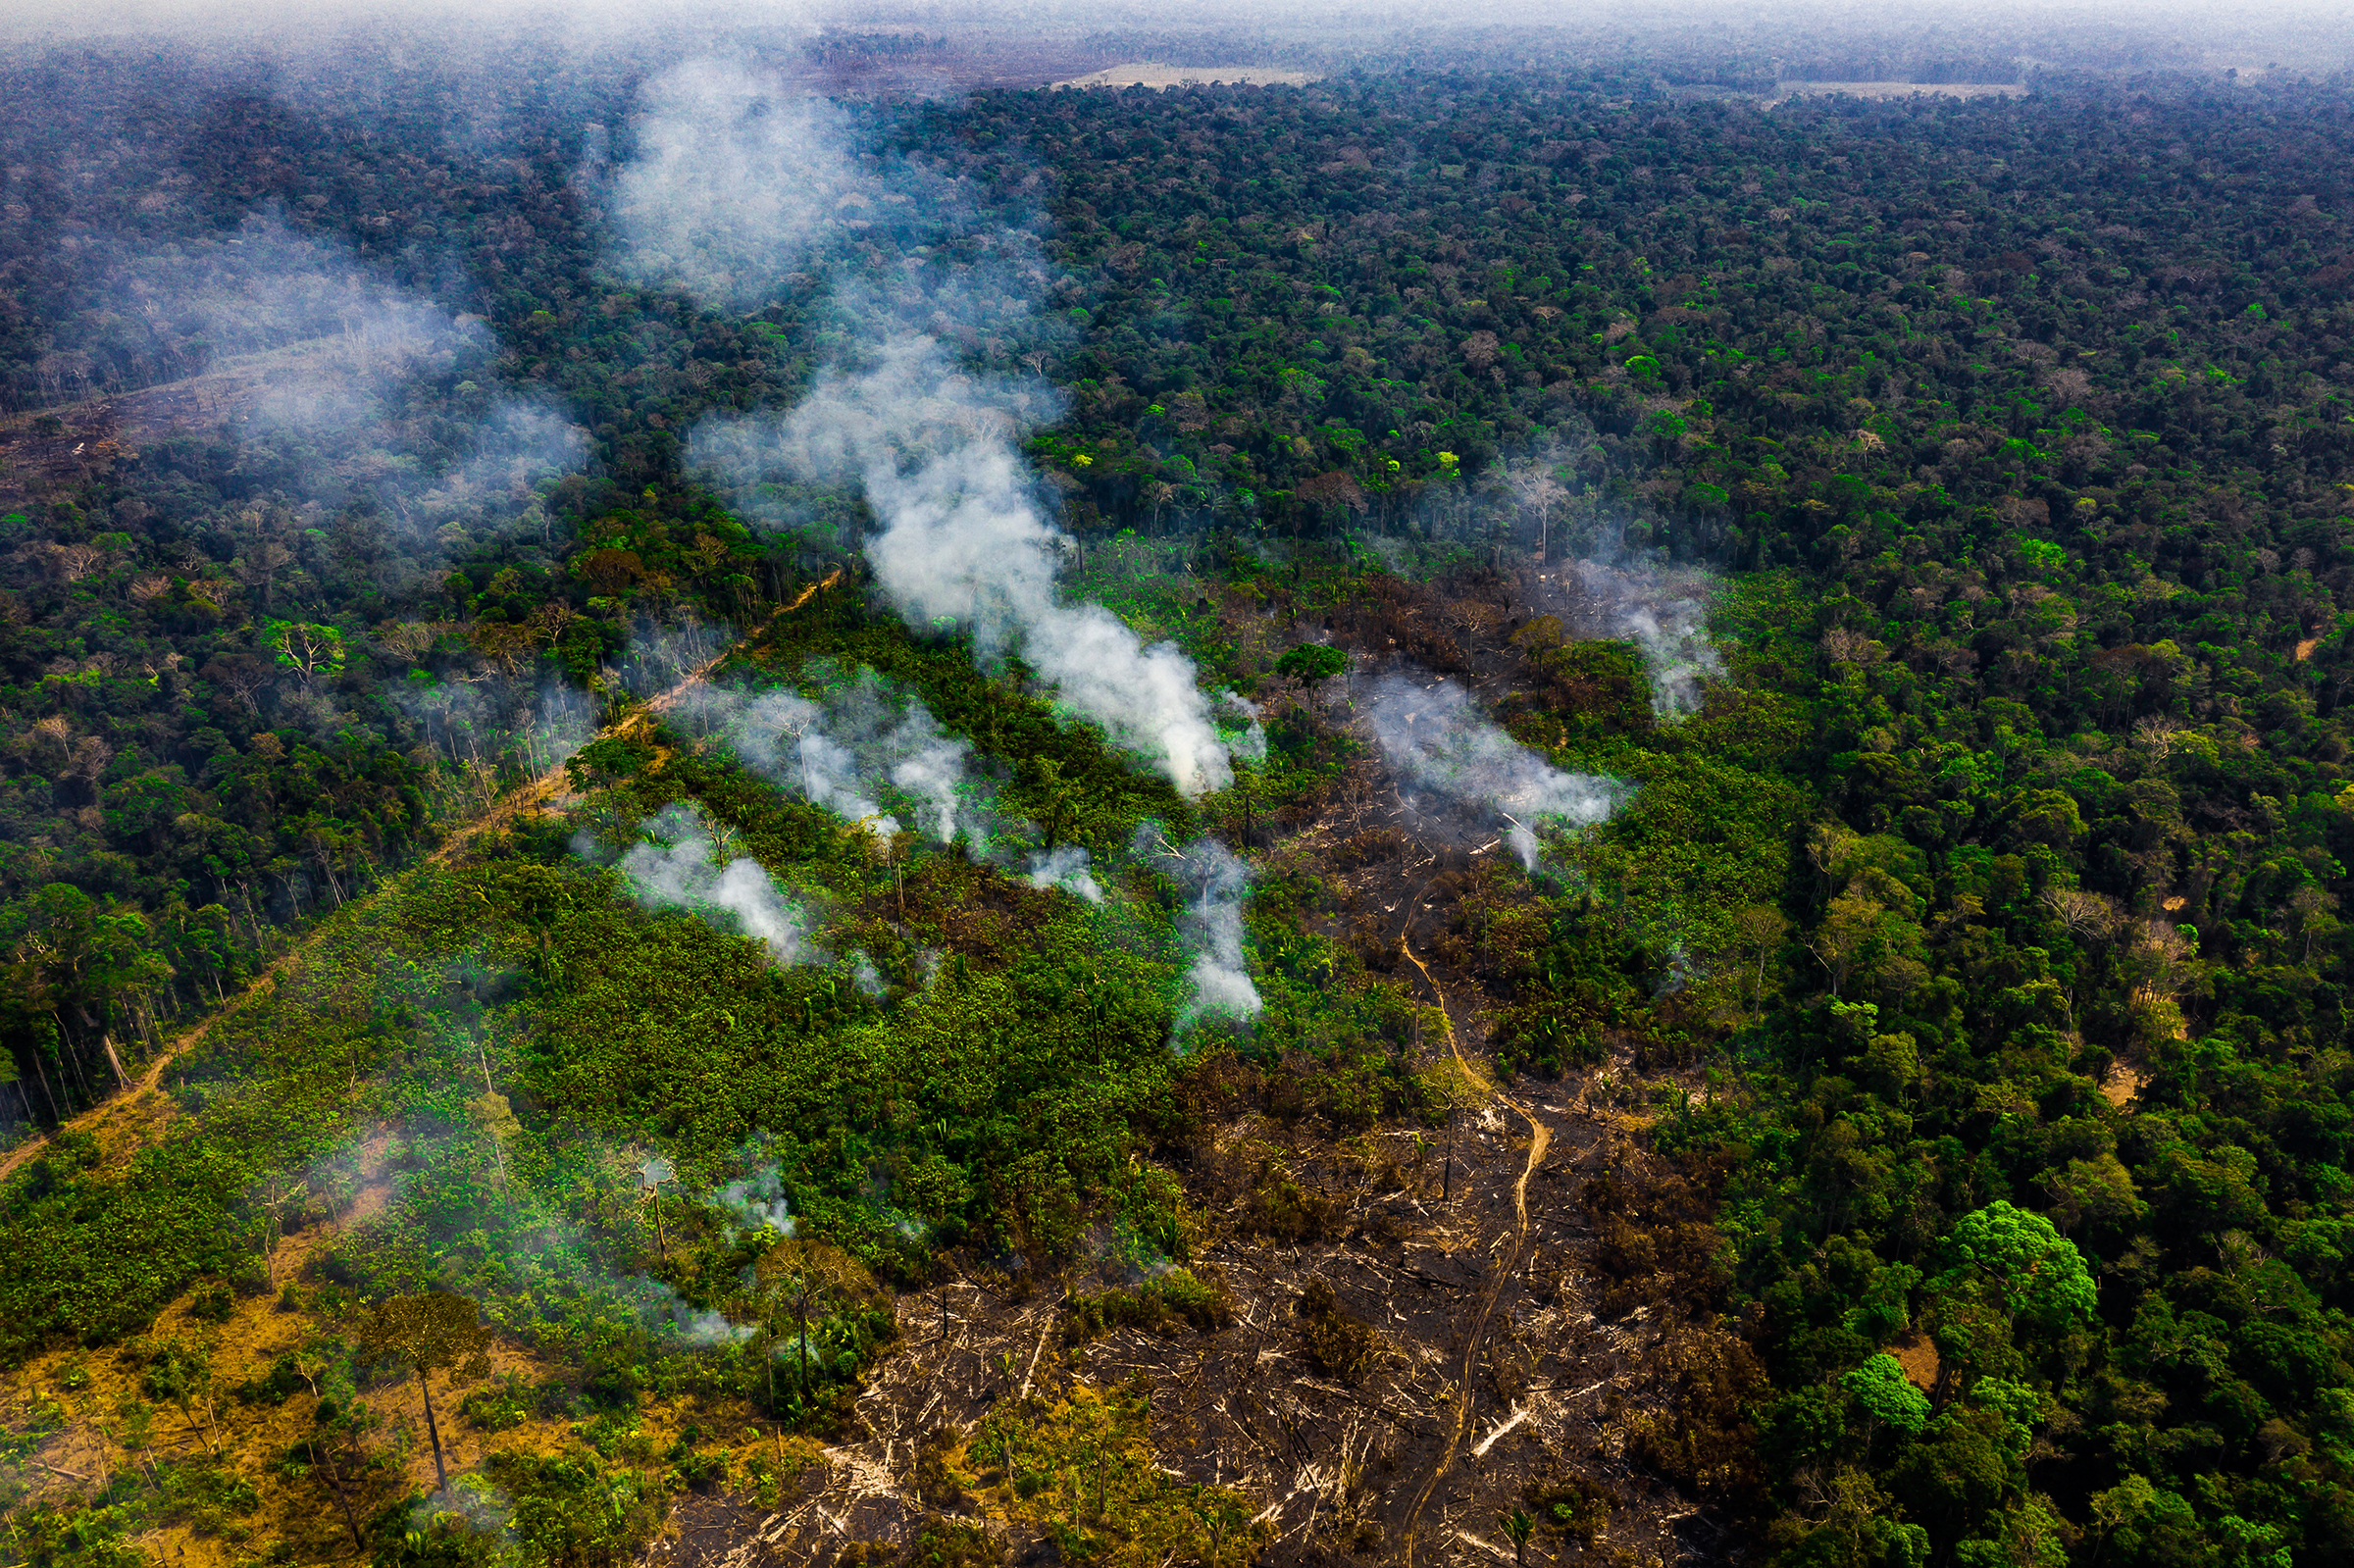 The fires in August 2019 were not limited to private land but also broke out in protected areas, including the Jacundá National Forest in Rondônia.